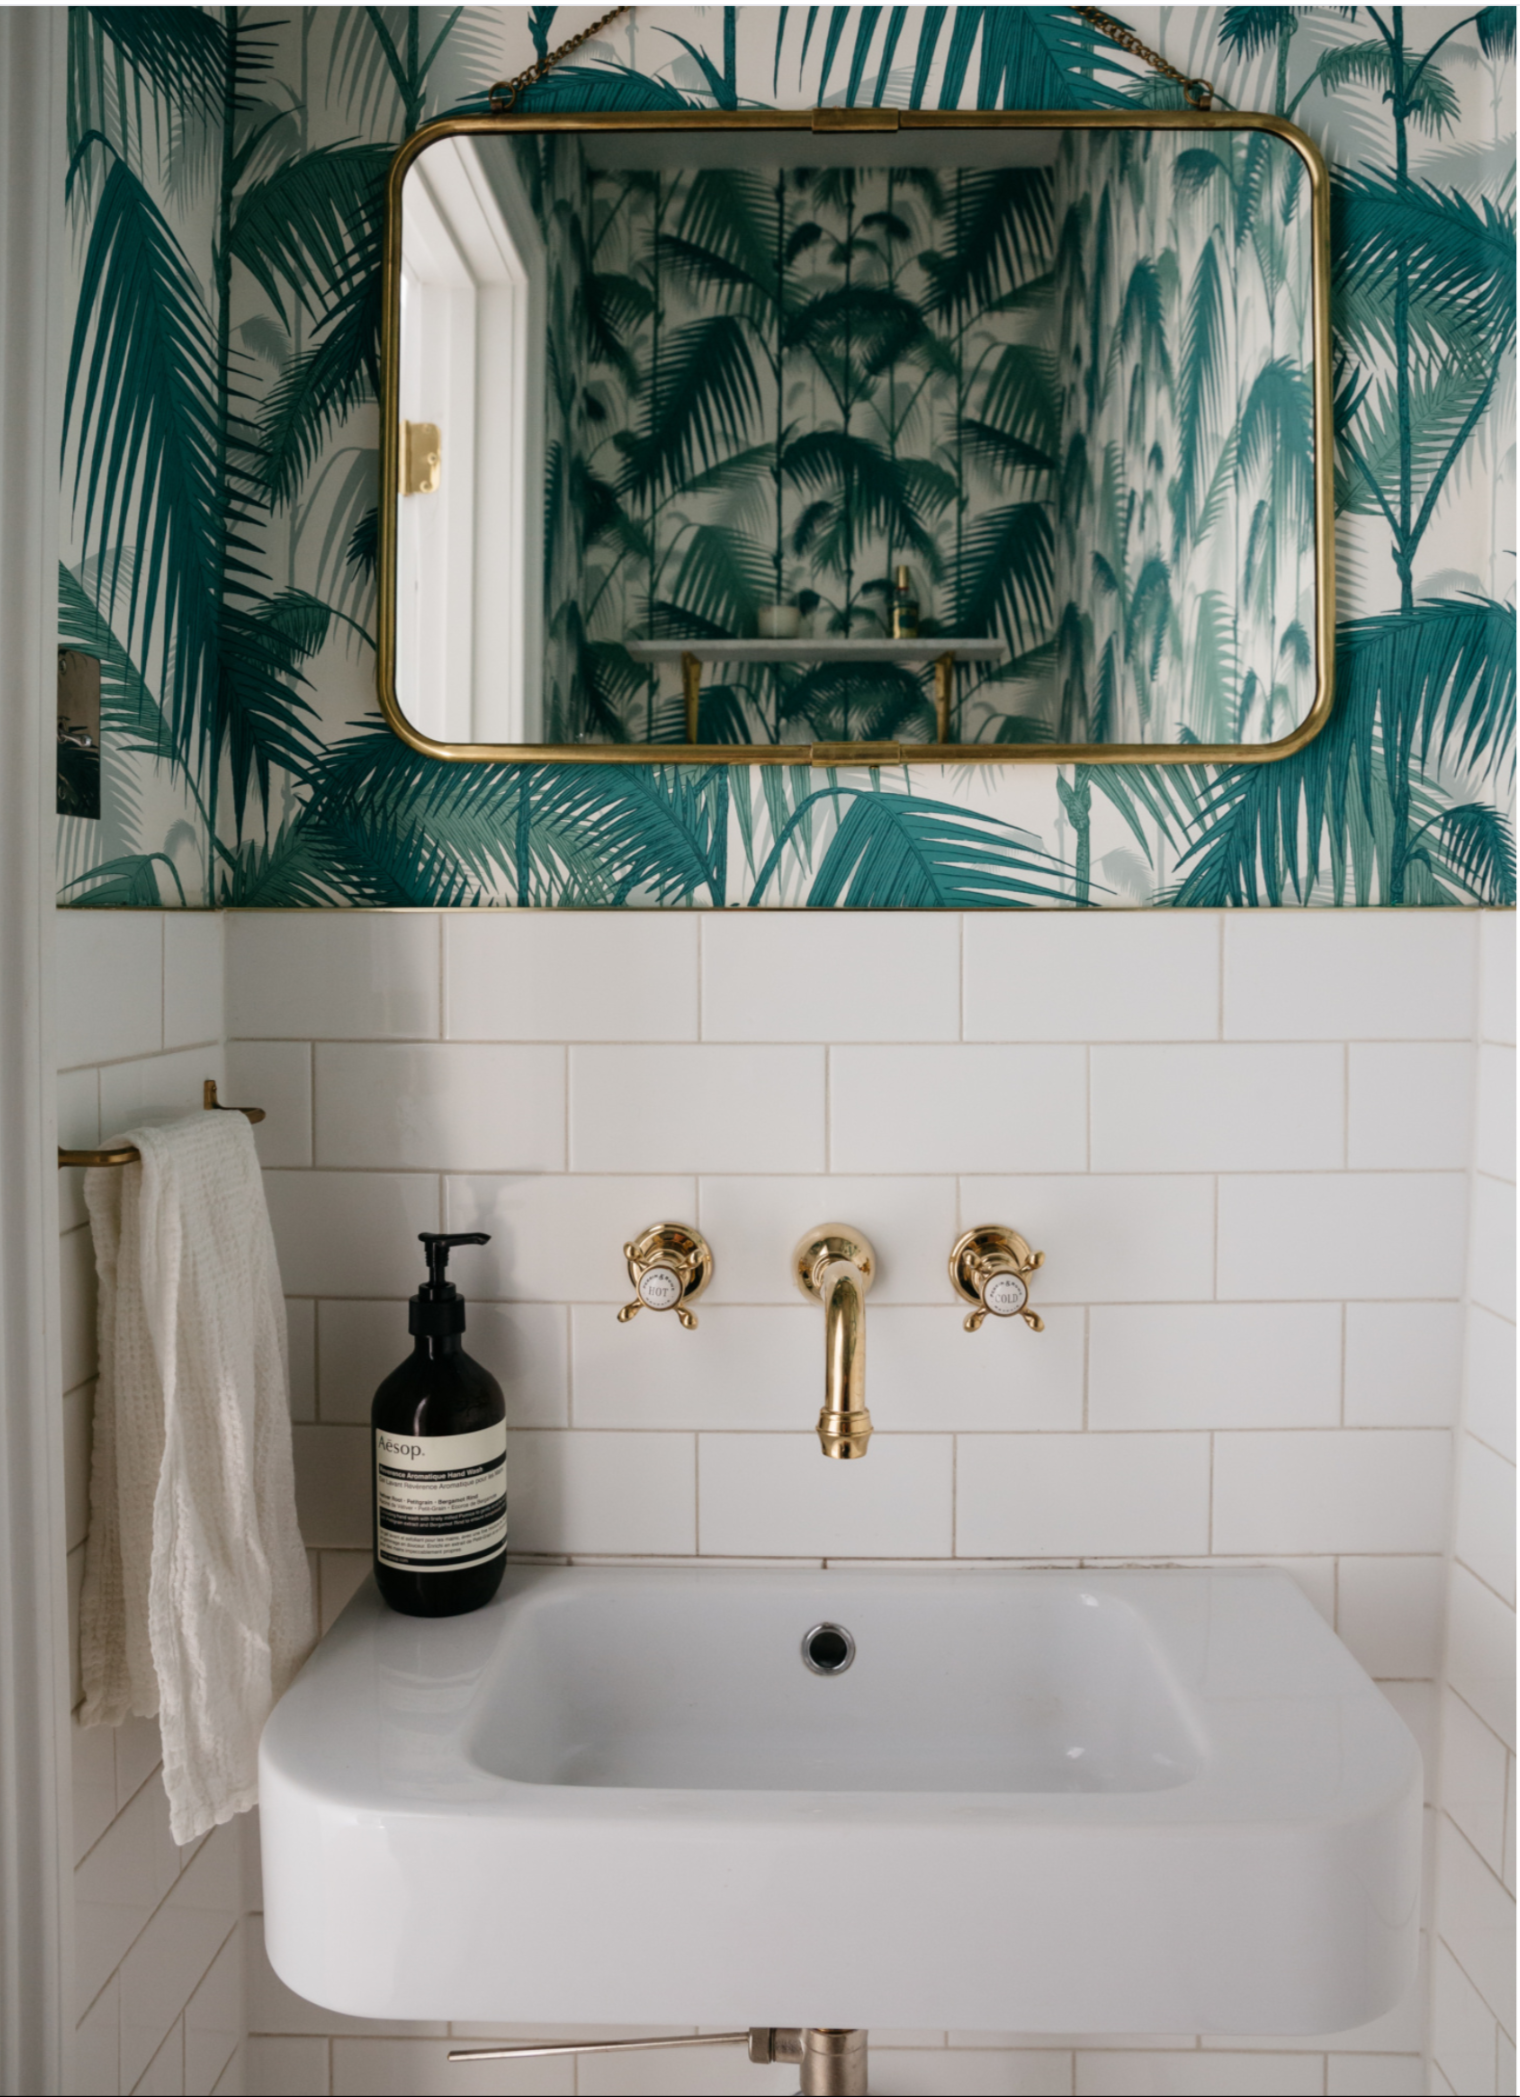 powder room fun tile with jungle wallpaper above